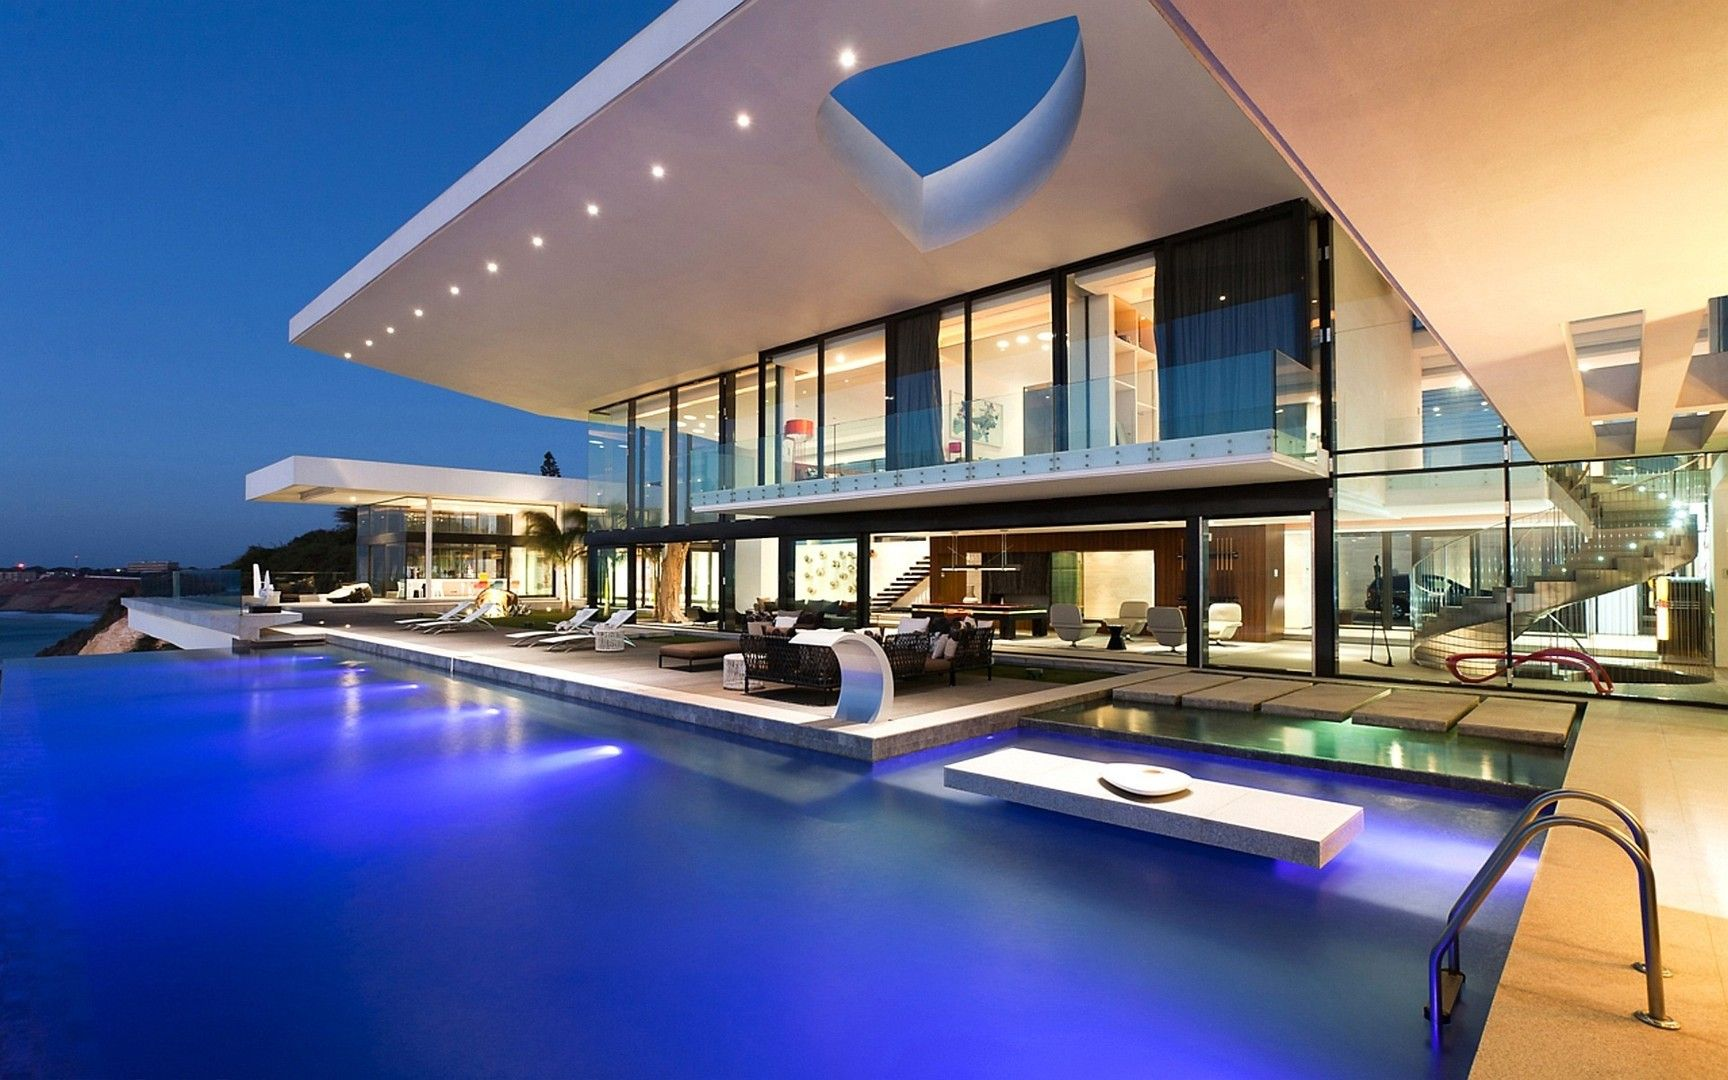 Huge Houses With Pools awesome modern house with pool : pool - viewdecor | architecture